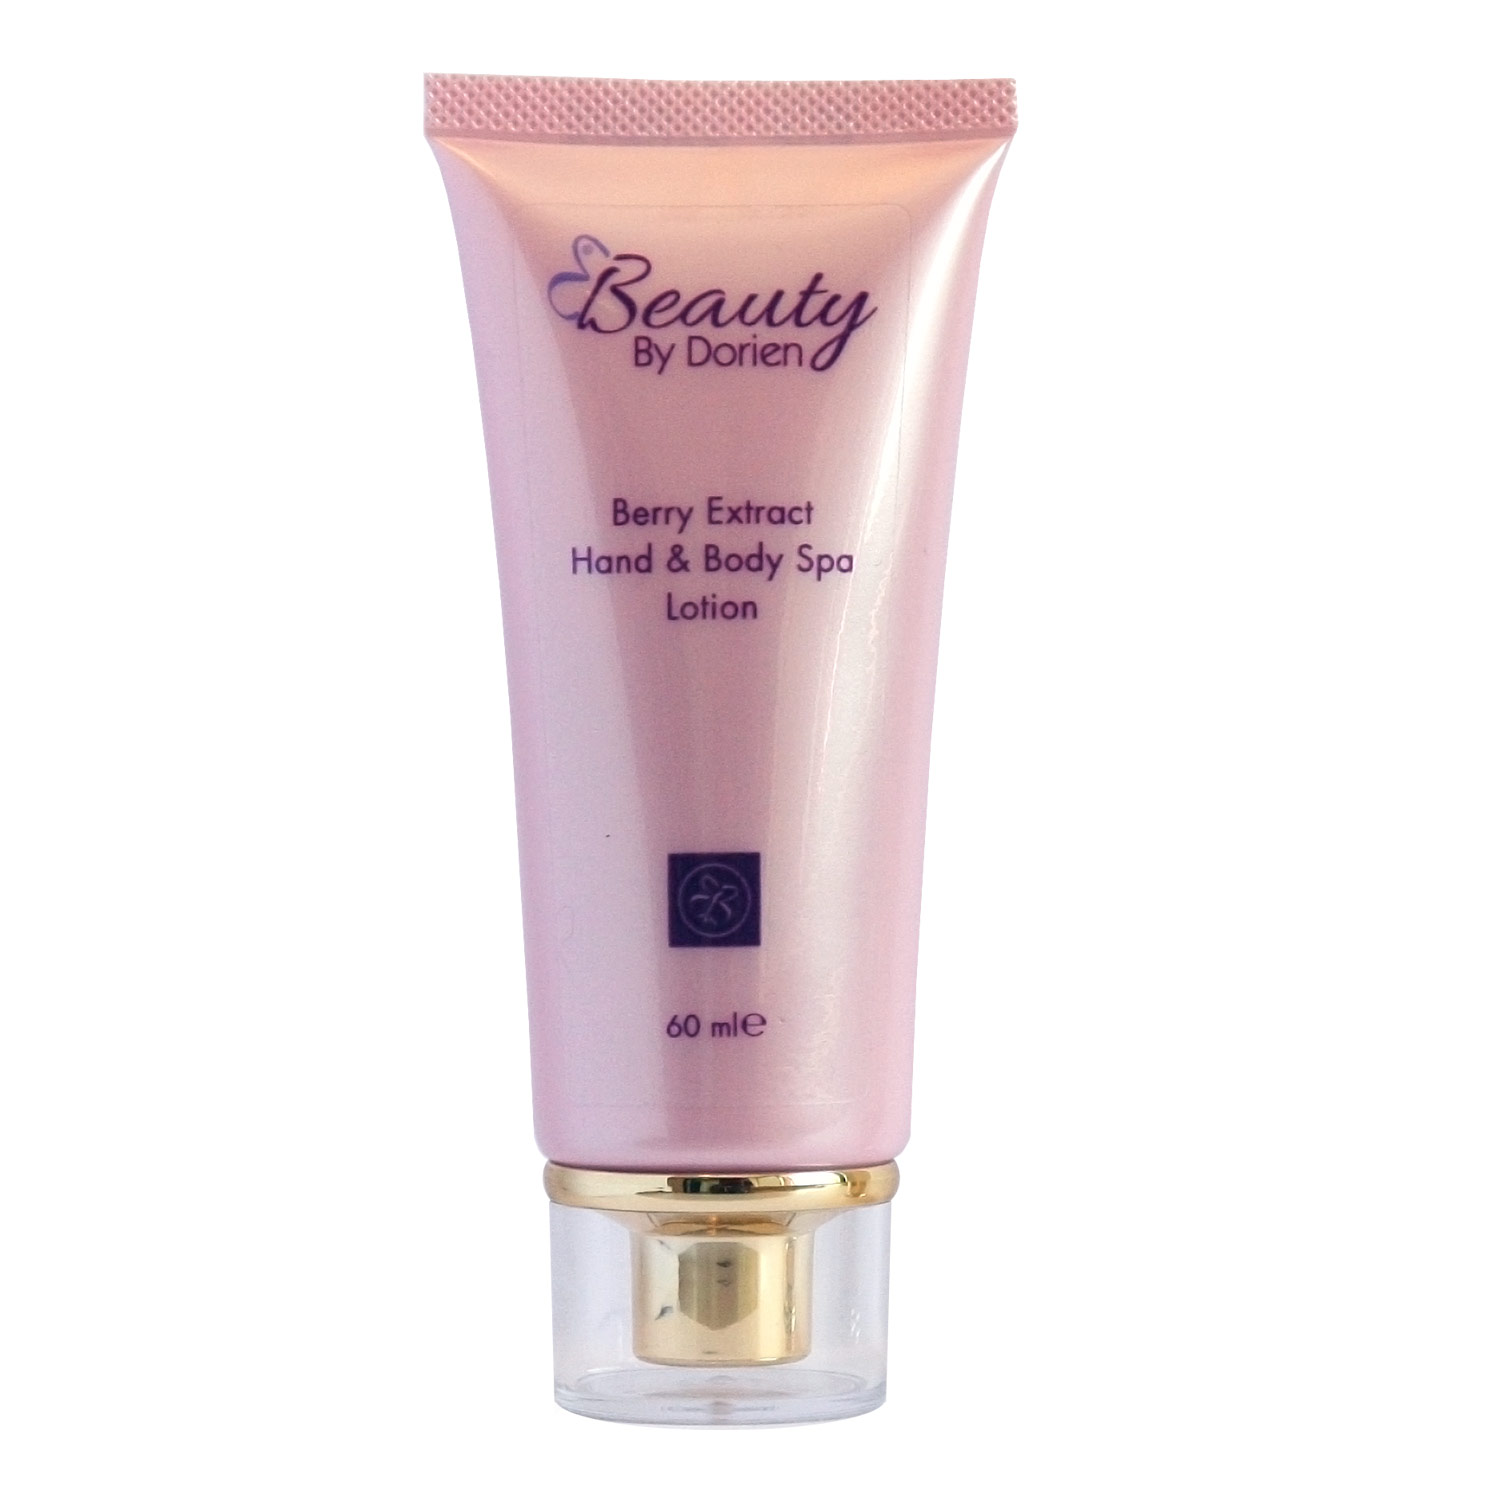 Hand en Body Lotion met berry extract van Beauty By Dorien